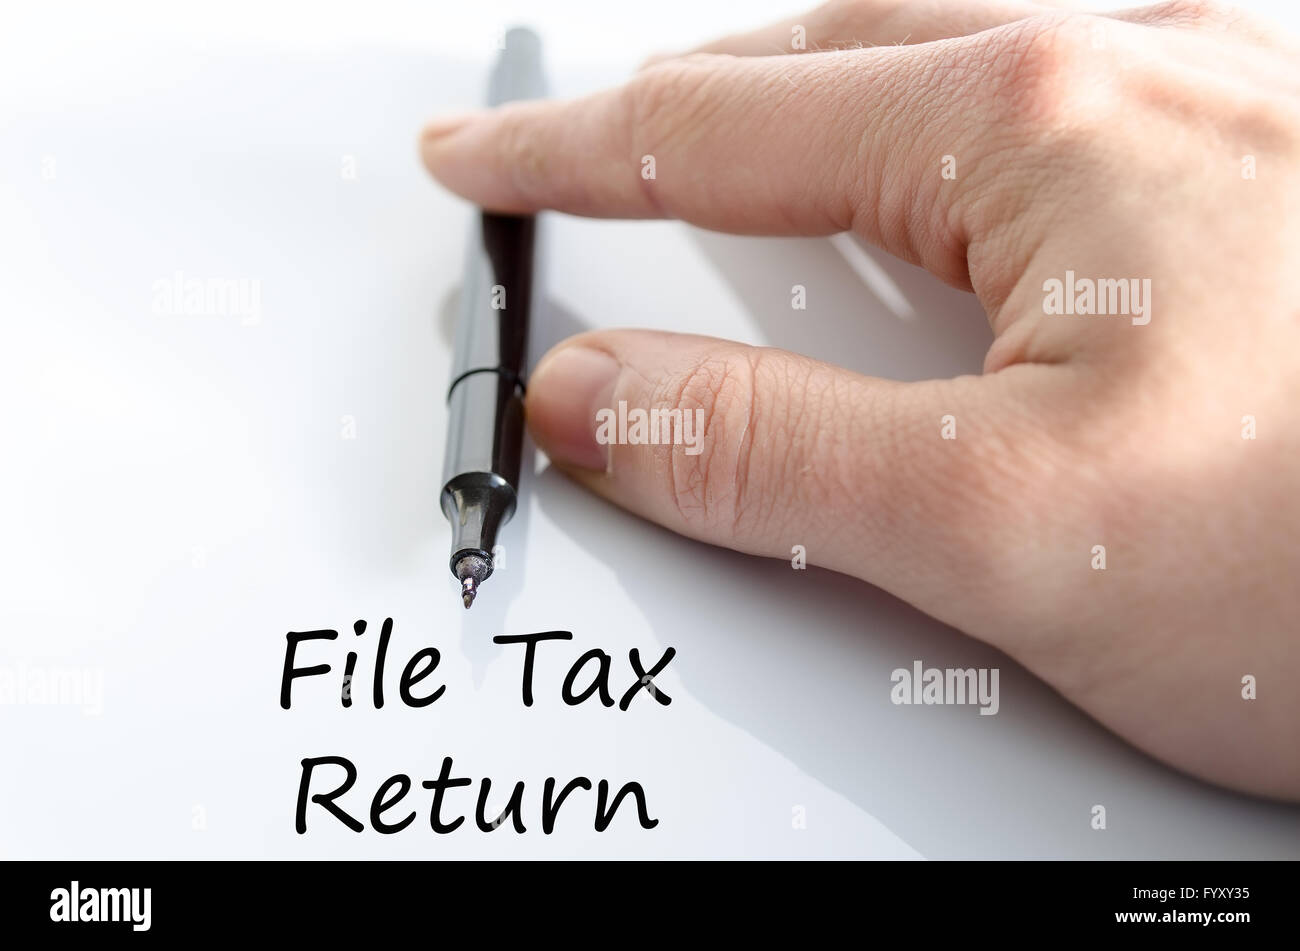 File tax return text concept - Stock Image